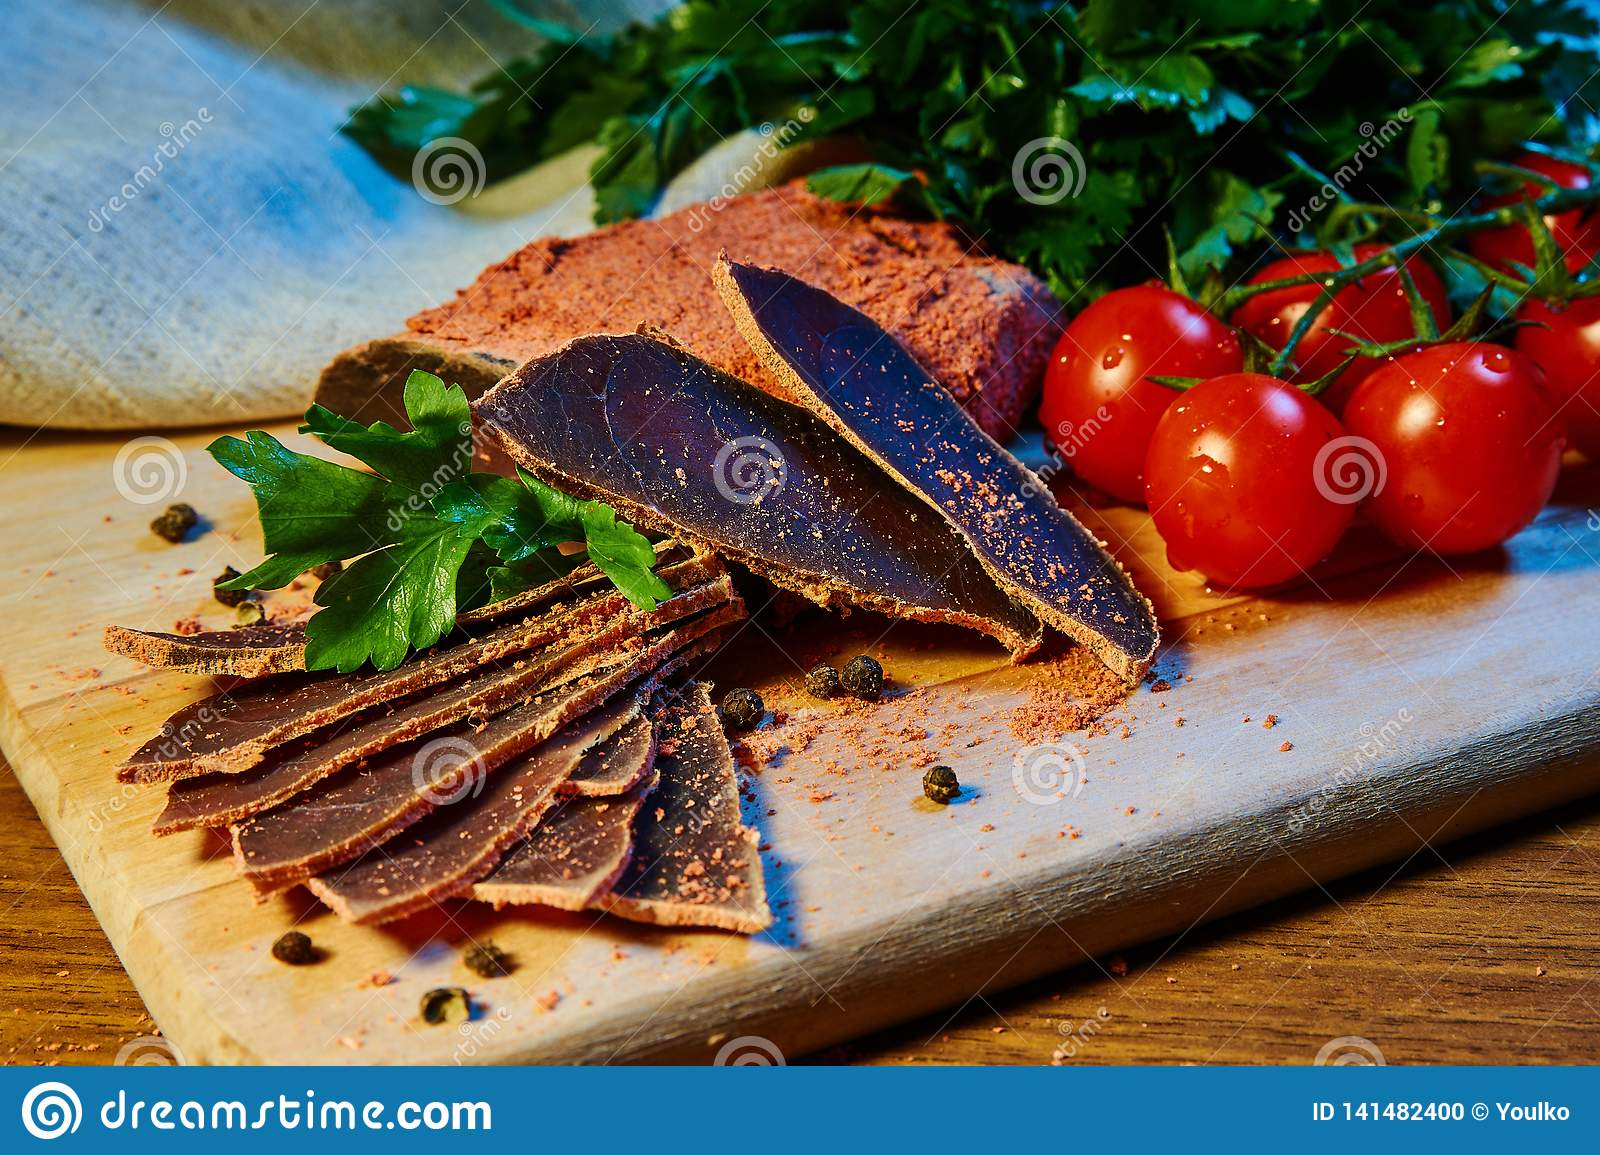 Dried meat, basturma lies on a wooden Board with capers and spices. fresh parsley and red cherry tomatoes